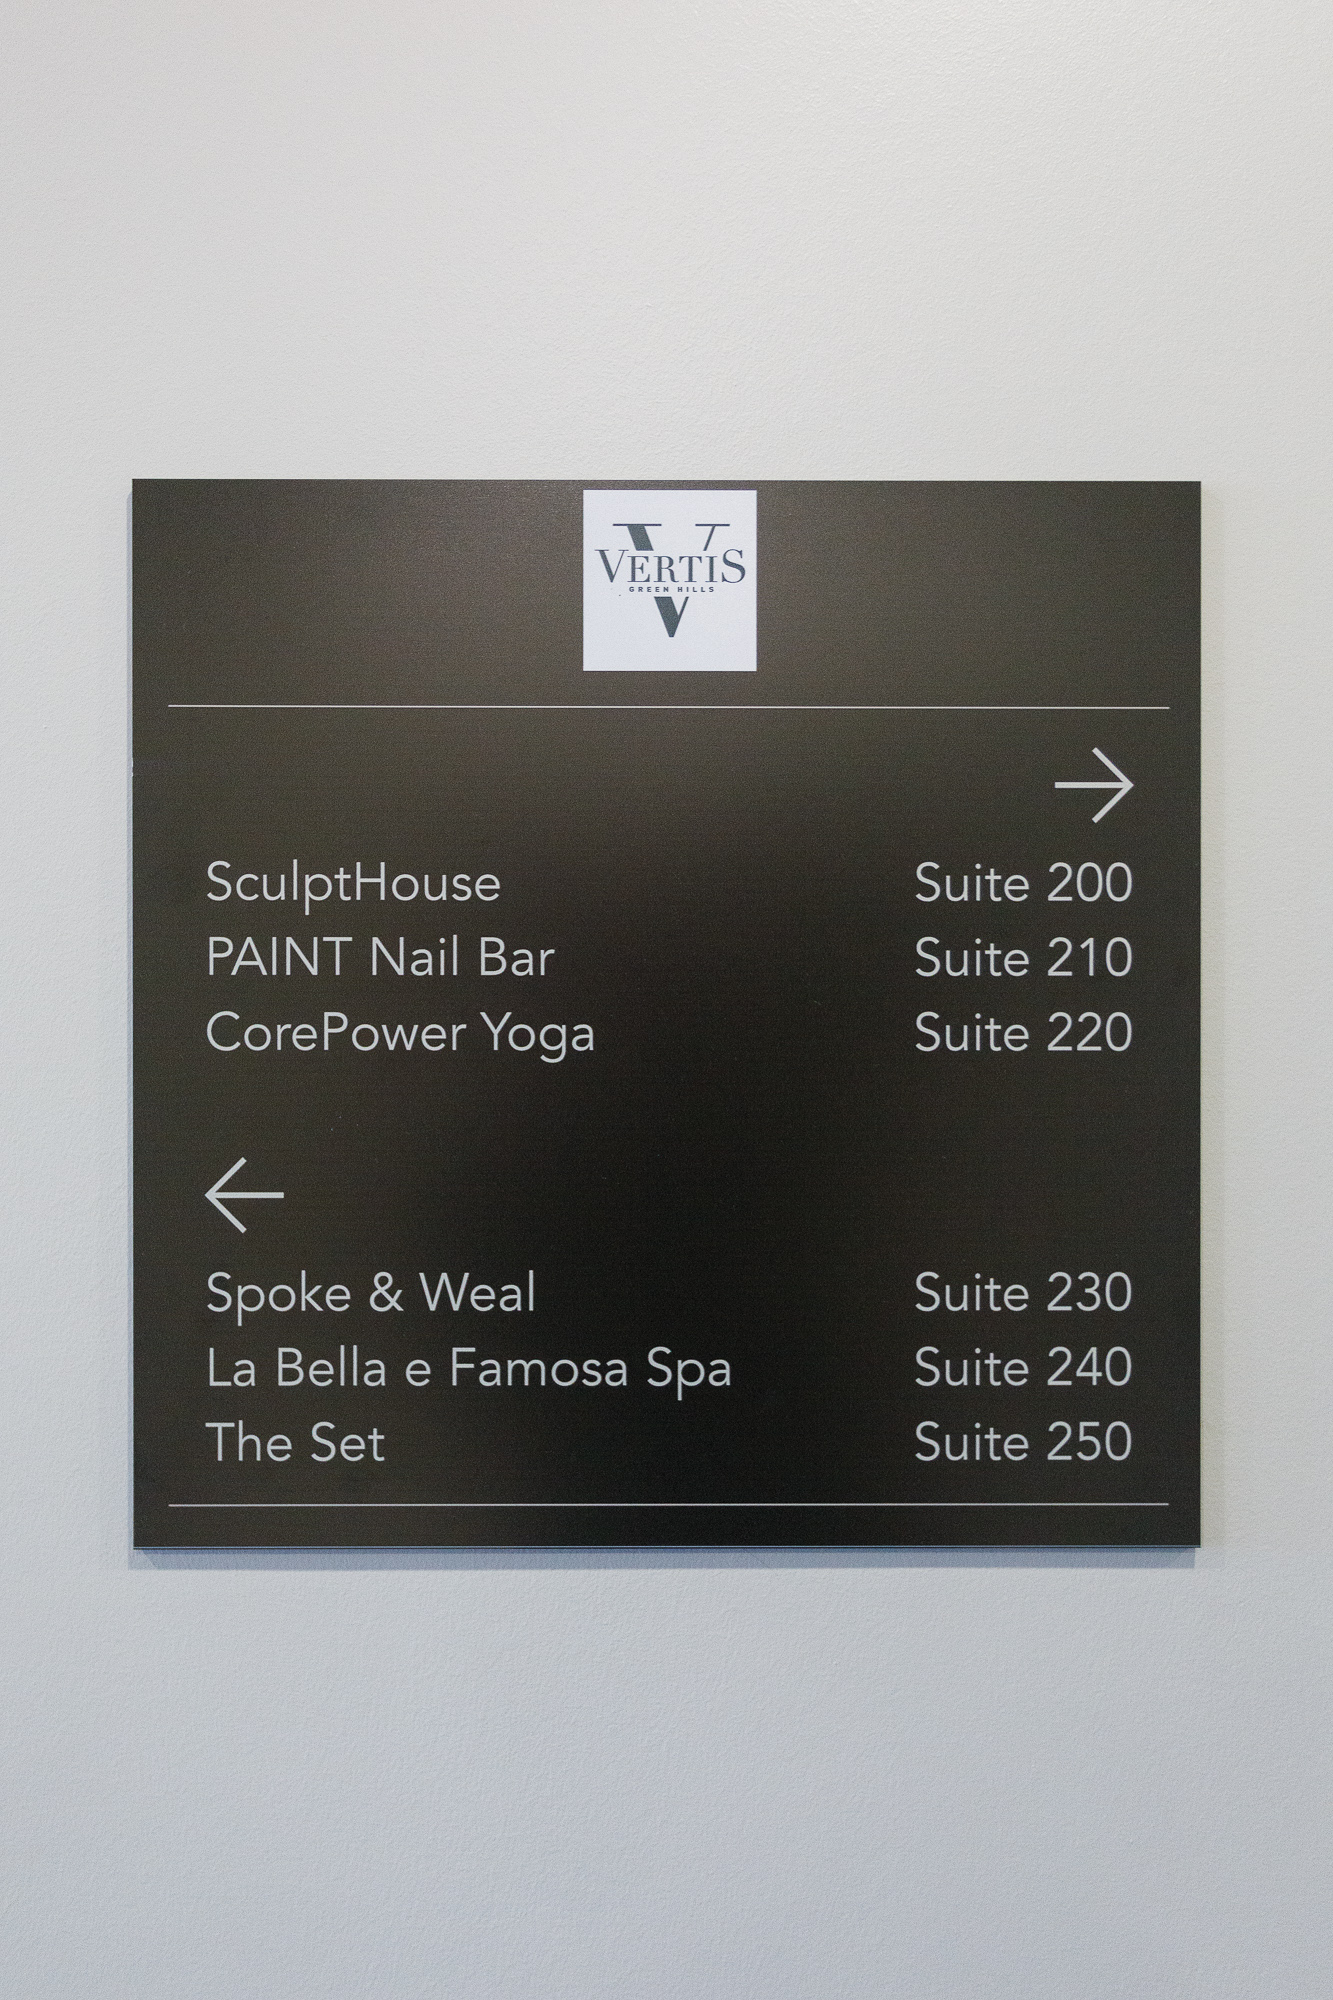 Vertis-Green-Hills_wayfinding-signage_retail_MG_5294_small 2000 px.jpg